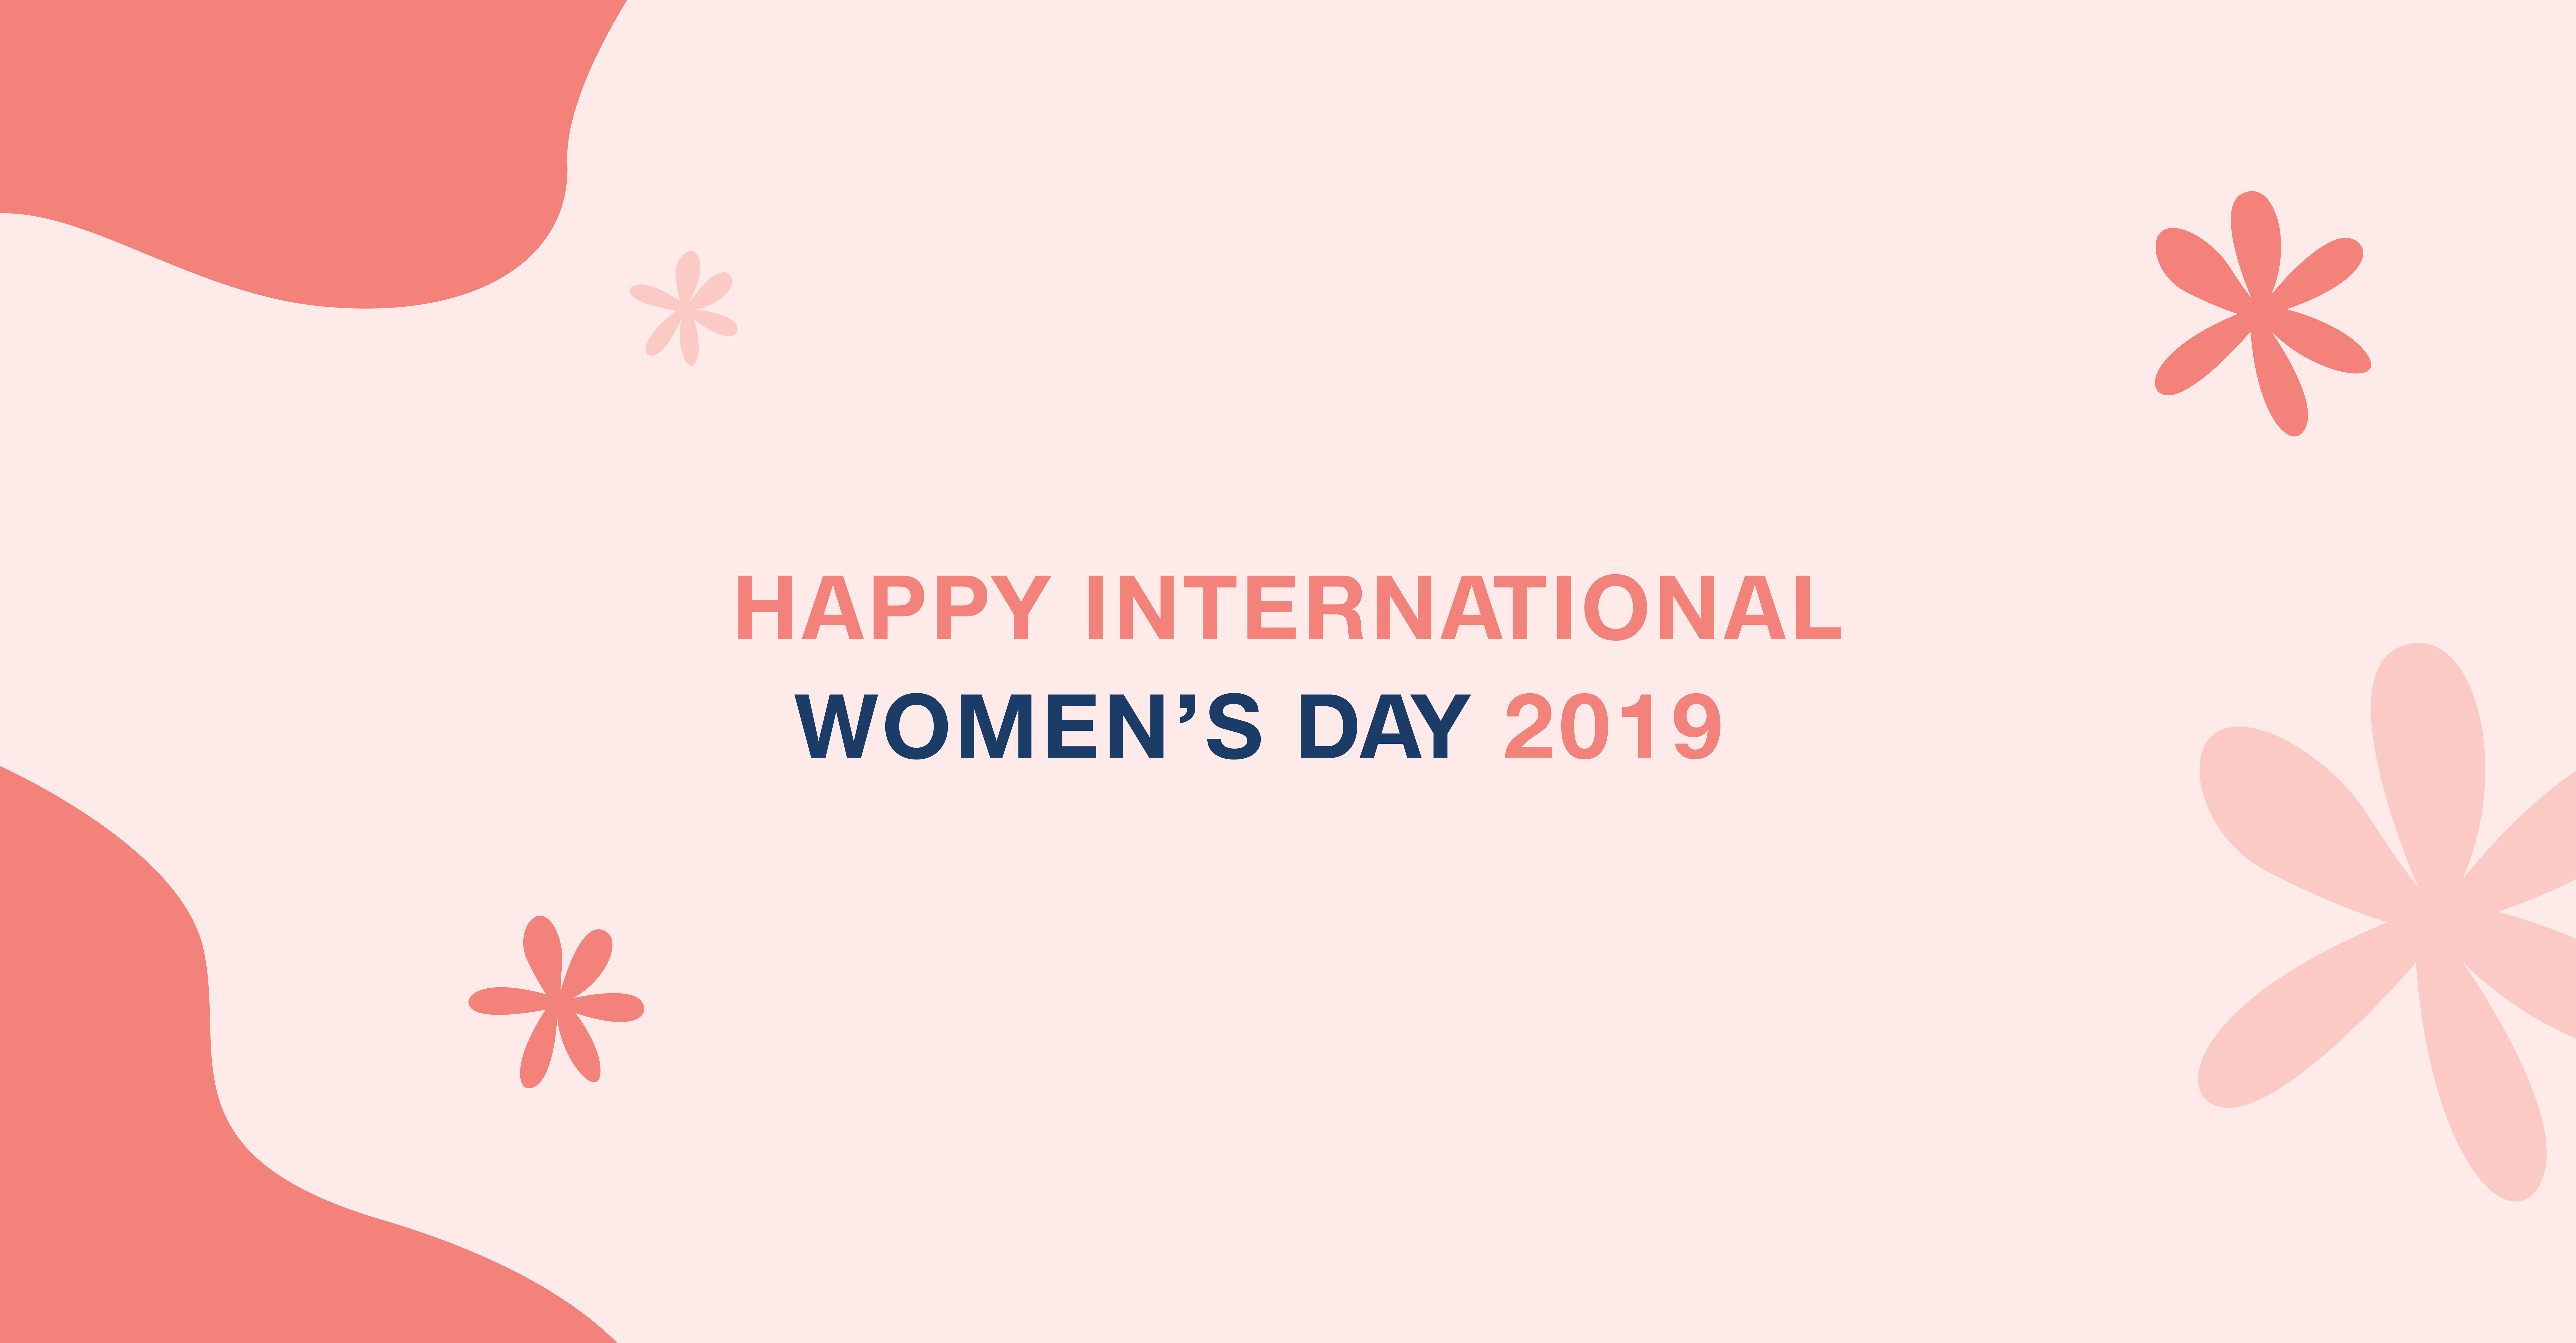 International Women's Day 2019 image